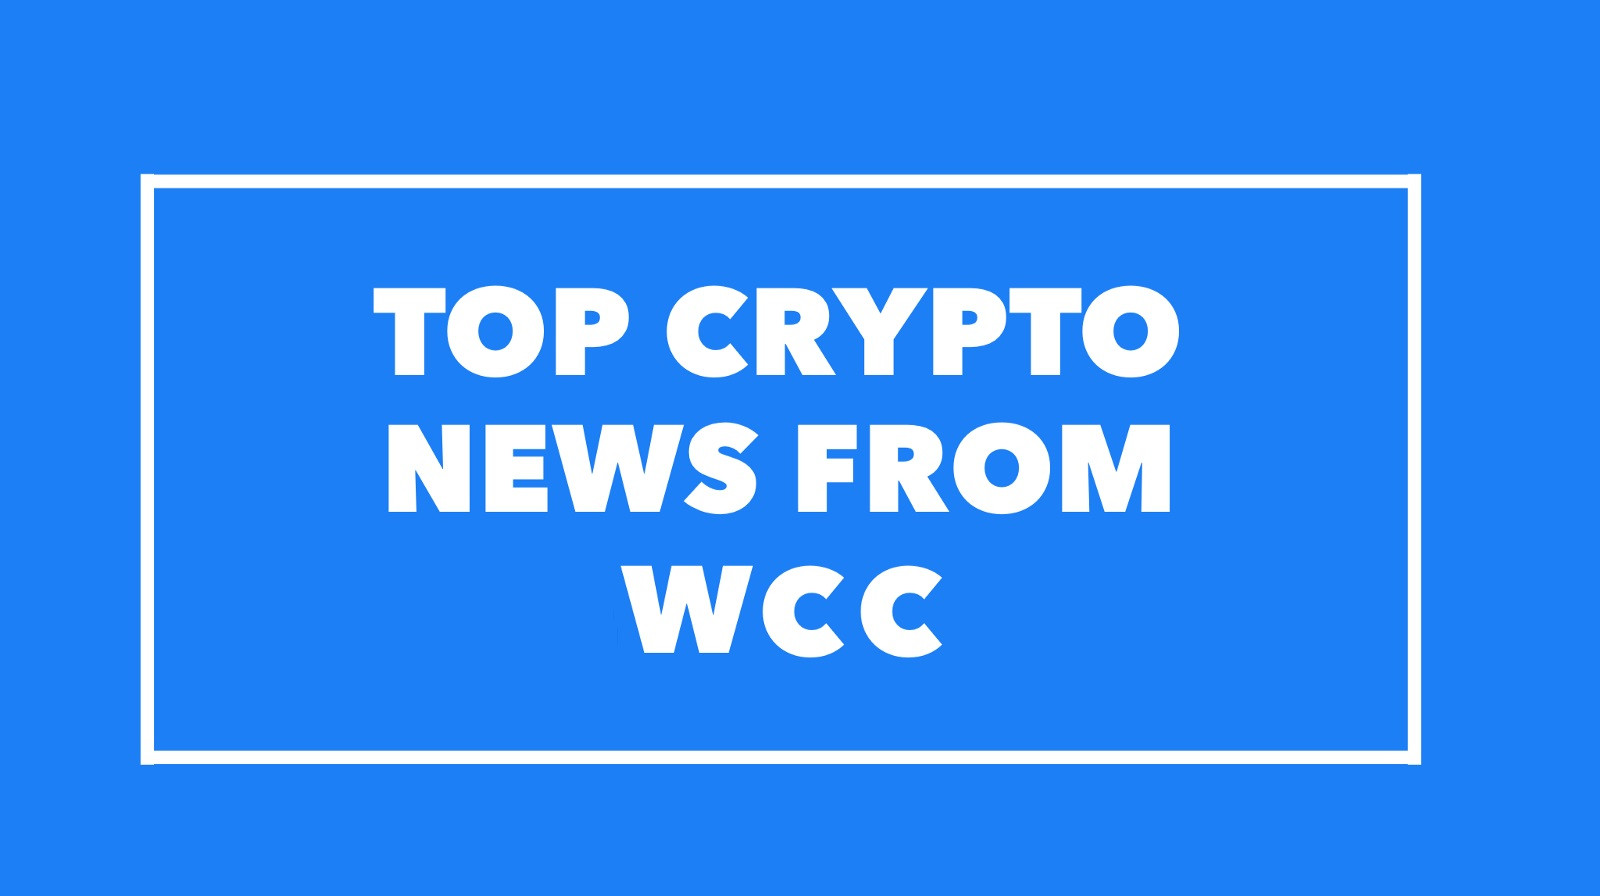 Top Crypto News from WCC